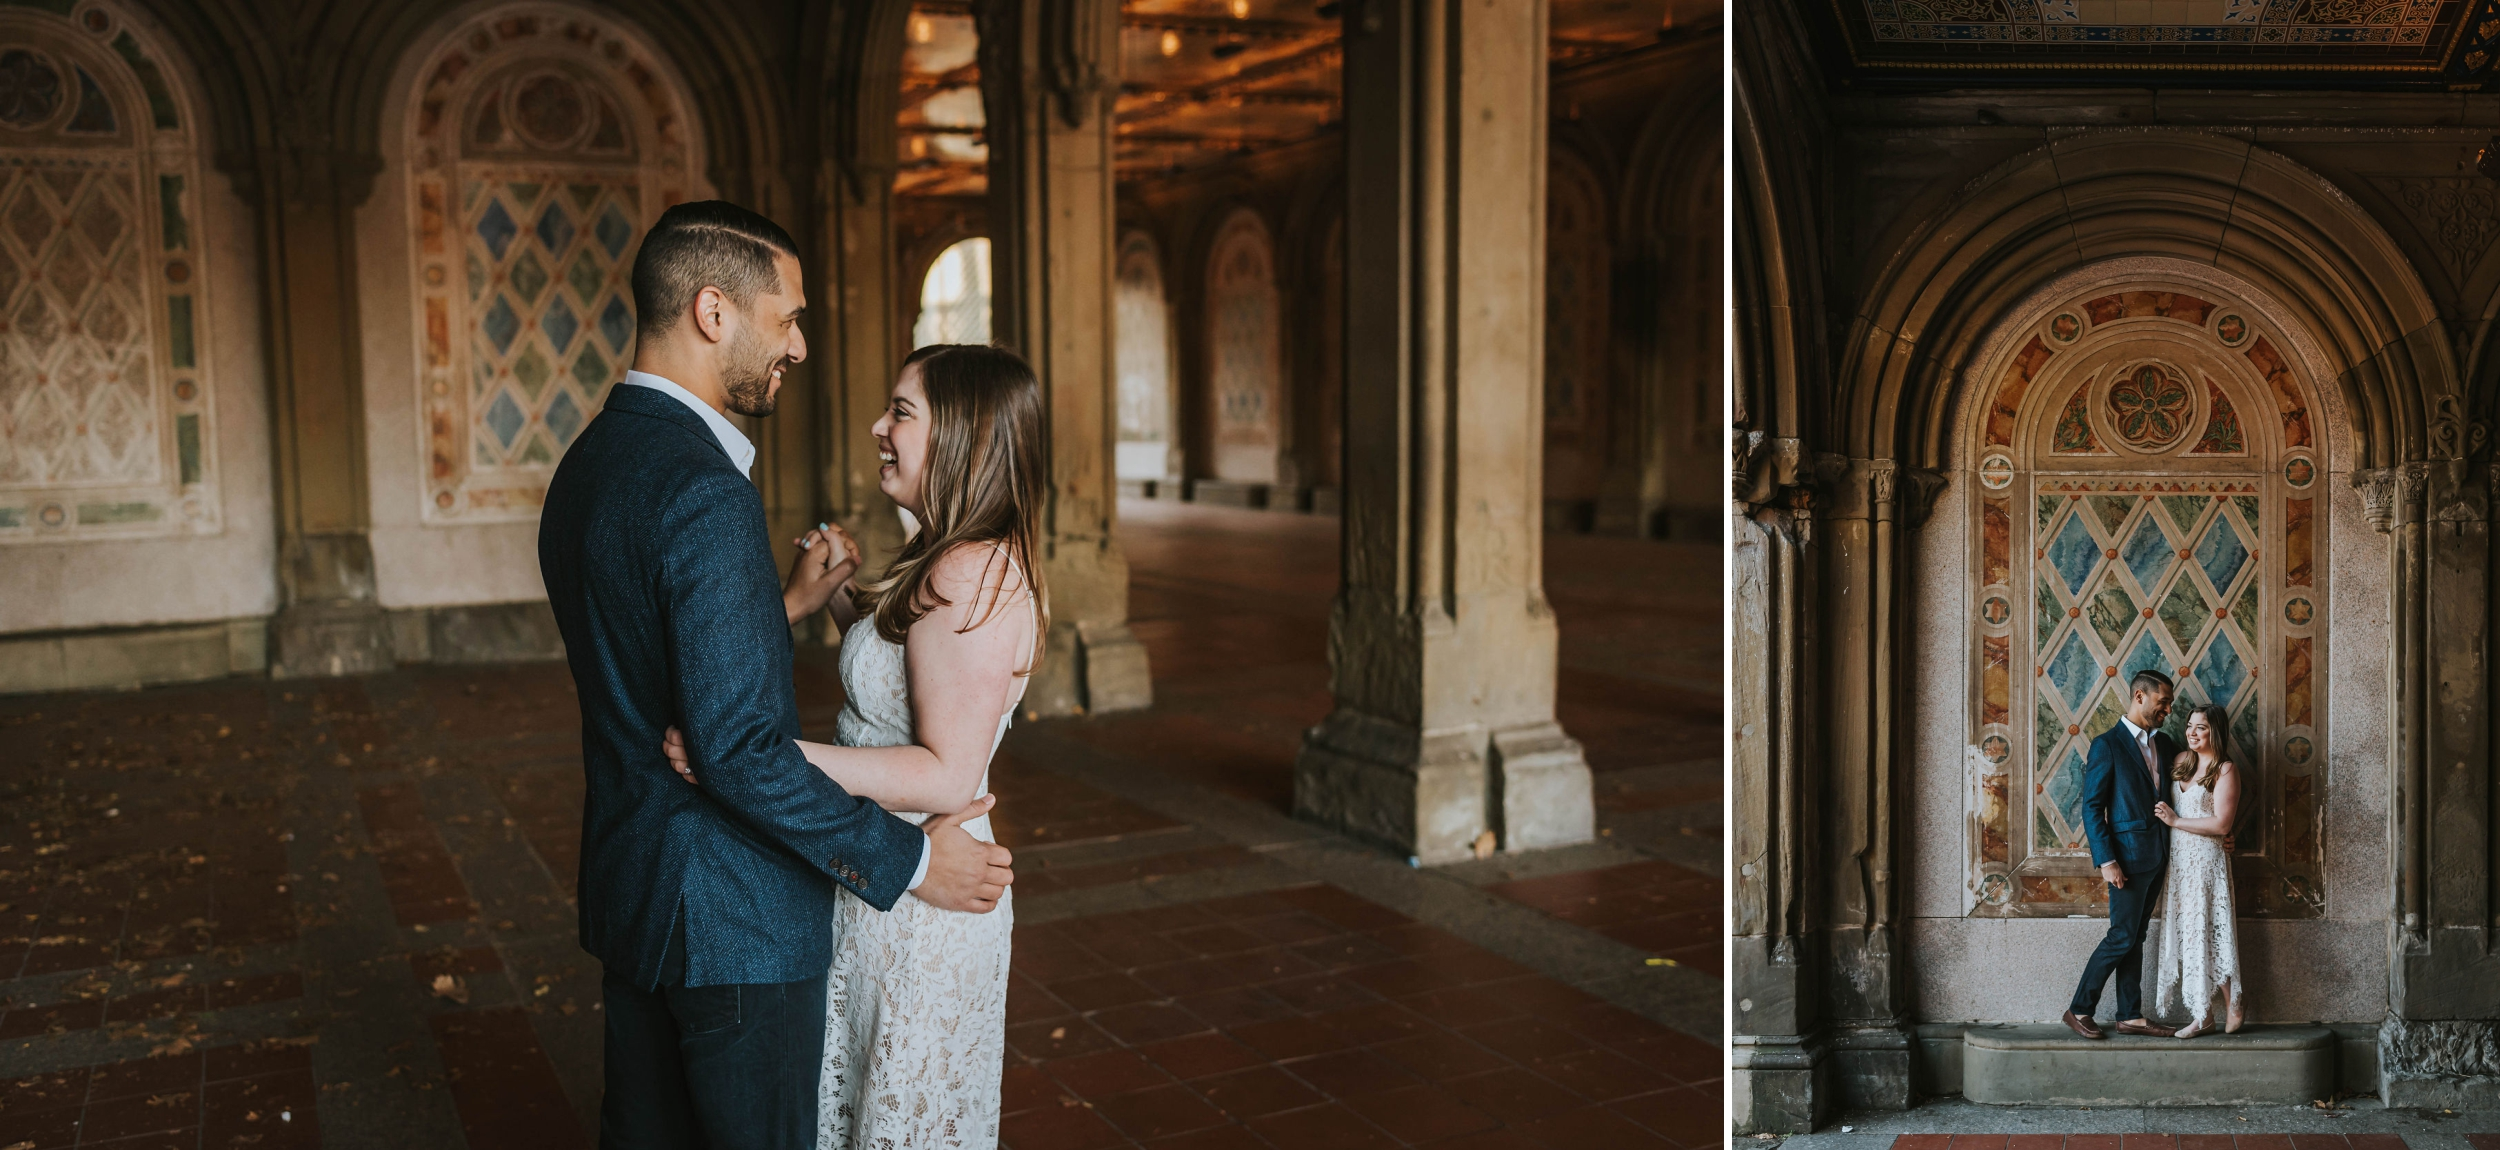 Rebecca and Darryn - Central Park Elopement NYC Manhattan 26.jpg